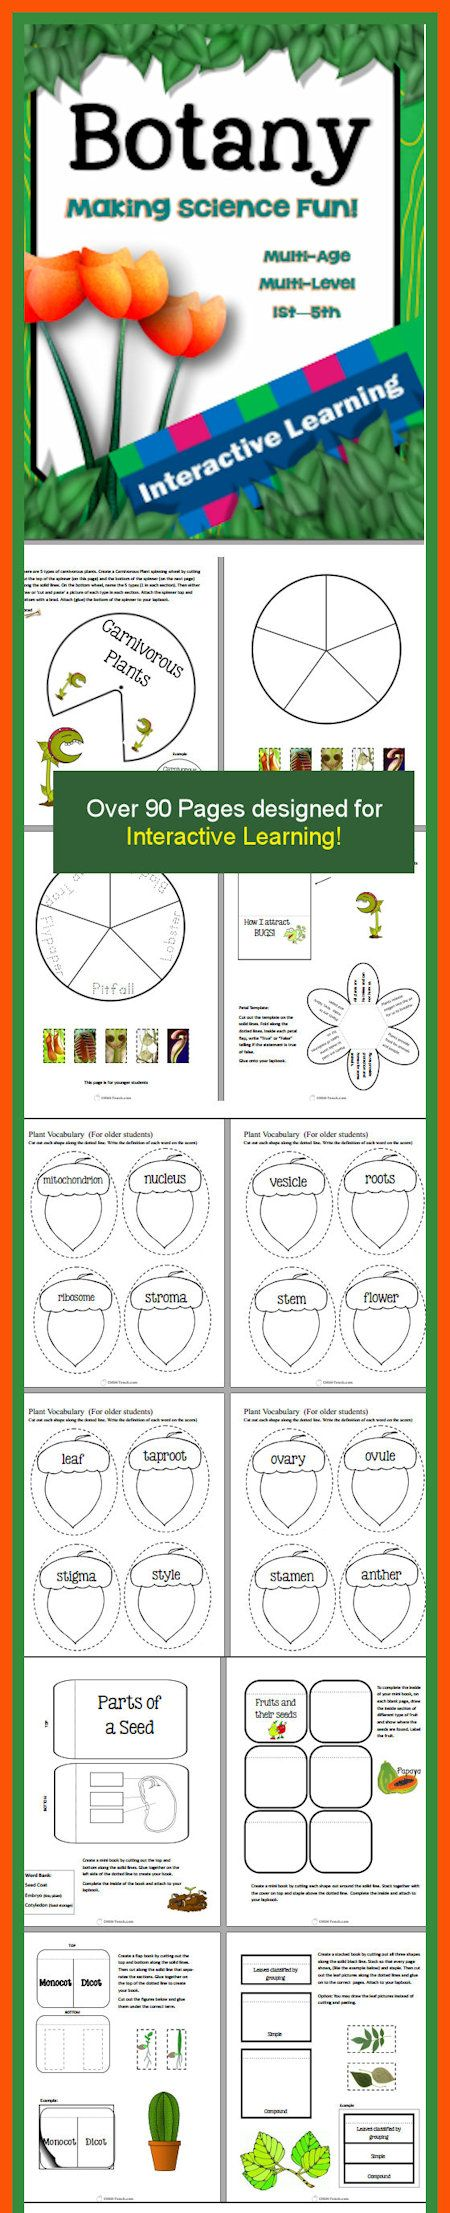 Designed for multi-age / multi-grade and allows students to create a beautiful, lasting project by the end of their study.  Topics/Areas covered in the unit: - What is Botany? What is a Botanist? - Parts of a plant (and their functions) - Anatomy of a flower (and functions of each part) - Flower to Seed reproduction - Parts of a seed - Types of seeds - Photosynthesis - Parts of a plant cell (and functions) - How plants are classified - Classification of leaves - Non-flowering plants…